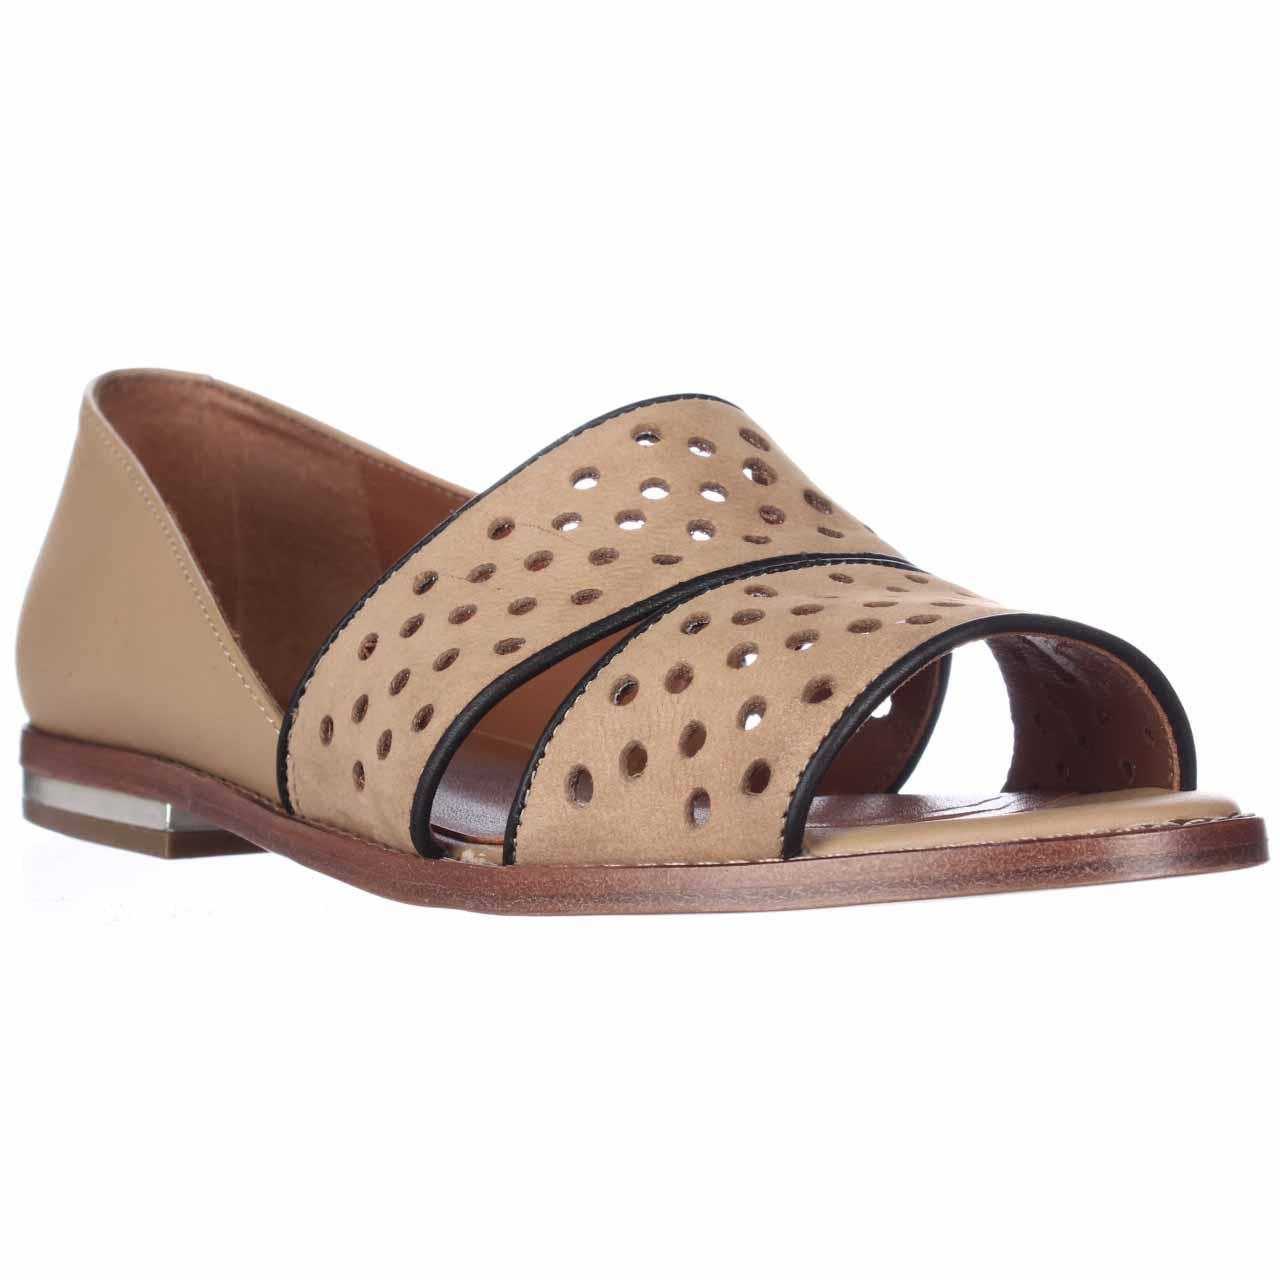 Womens Rebecca Minkoff Sadie Peep Toe Perforated Flats - Tan